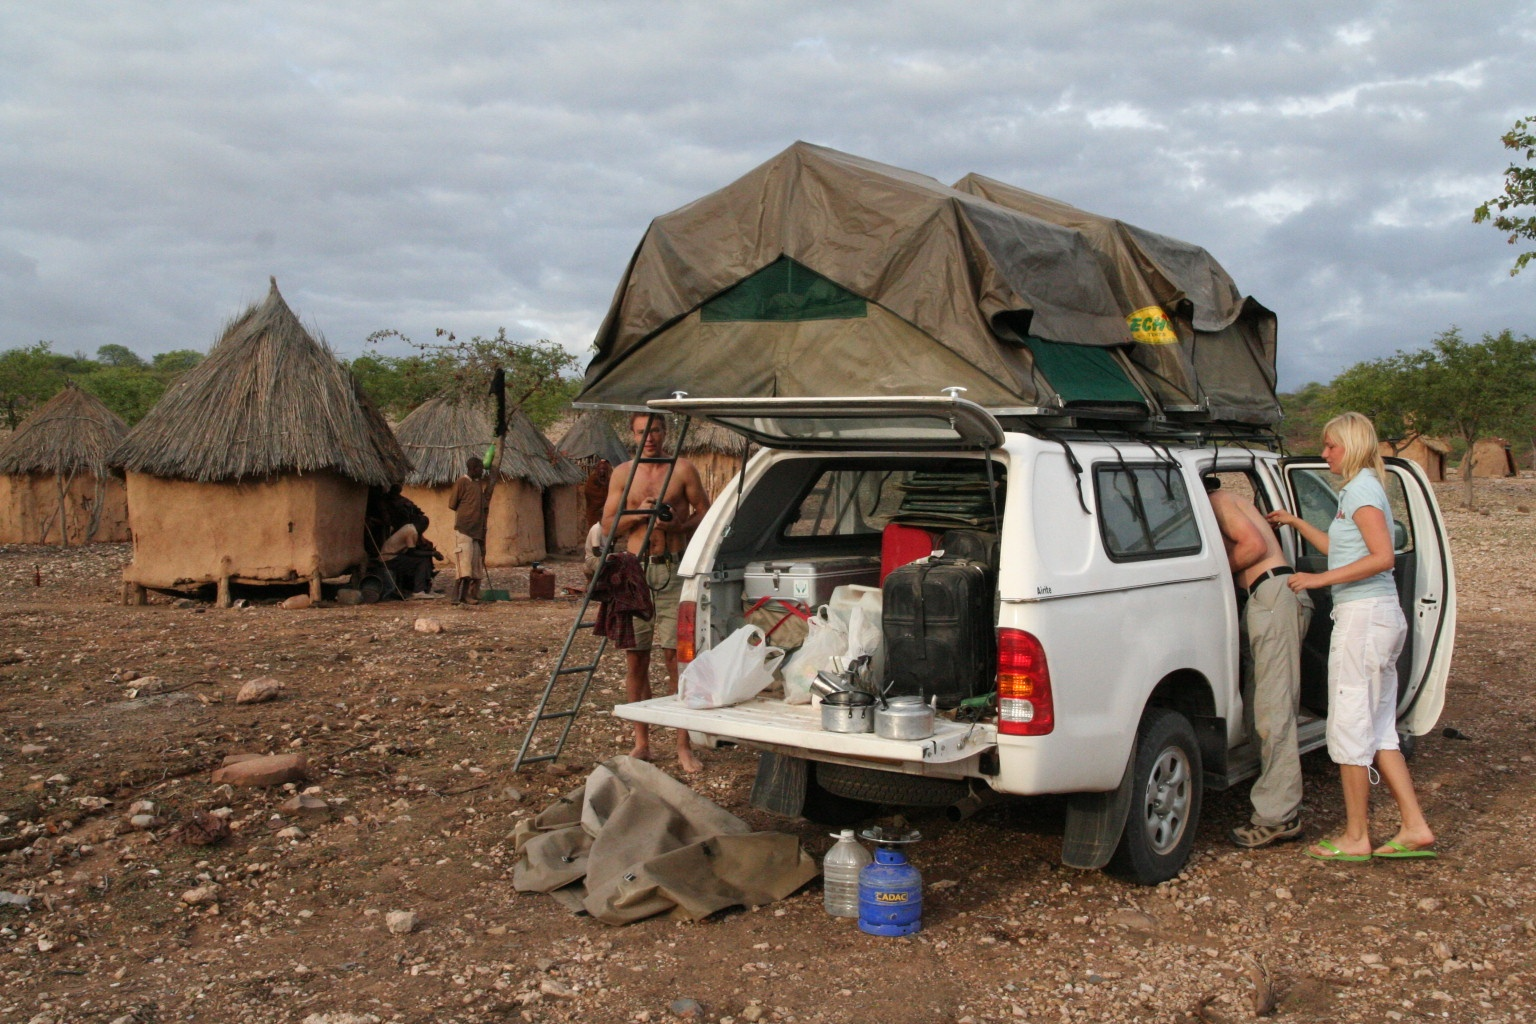 A morning in Himba traditional village near Opuwo